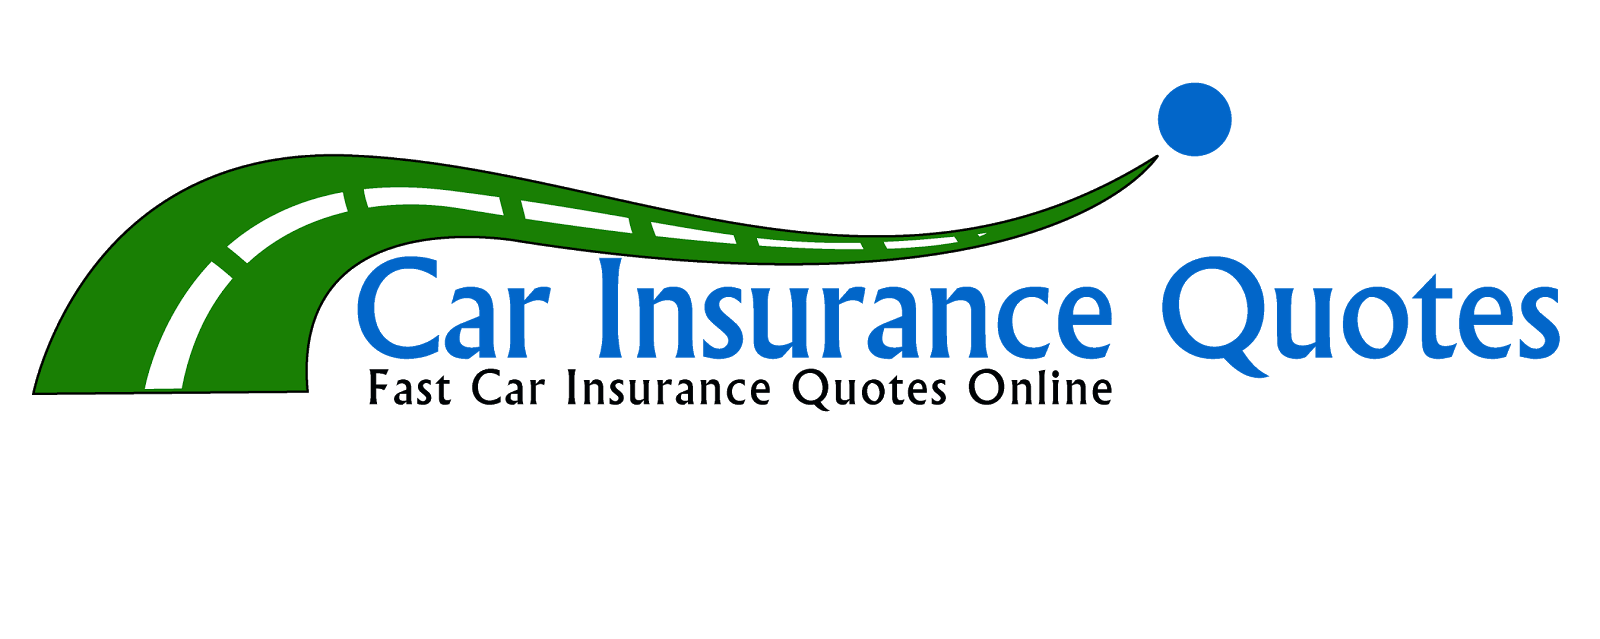 Free Insurance Quote Prepossessing Free Car Insurance Quotes Online  Places To Visit  Pinterest . Review